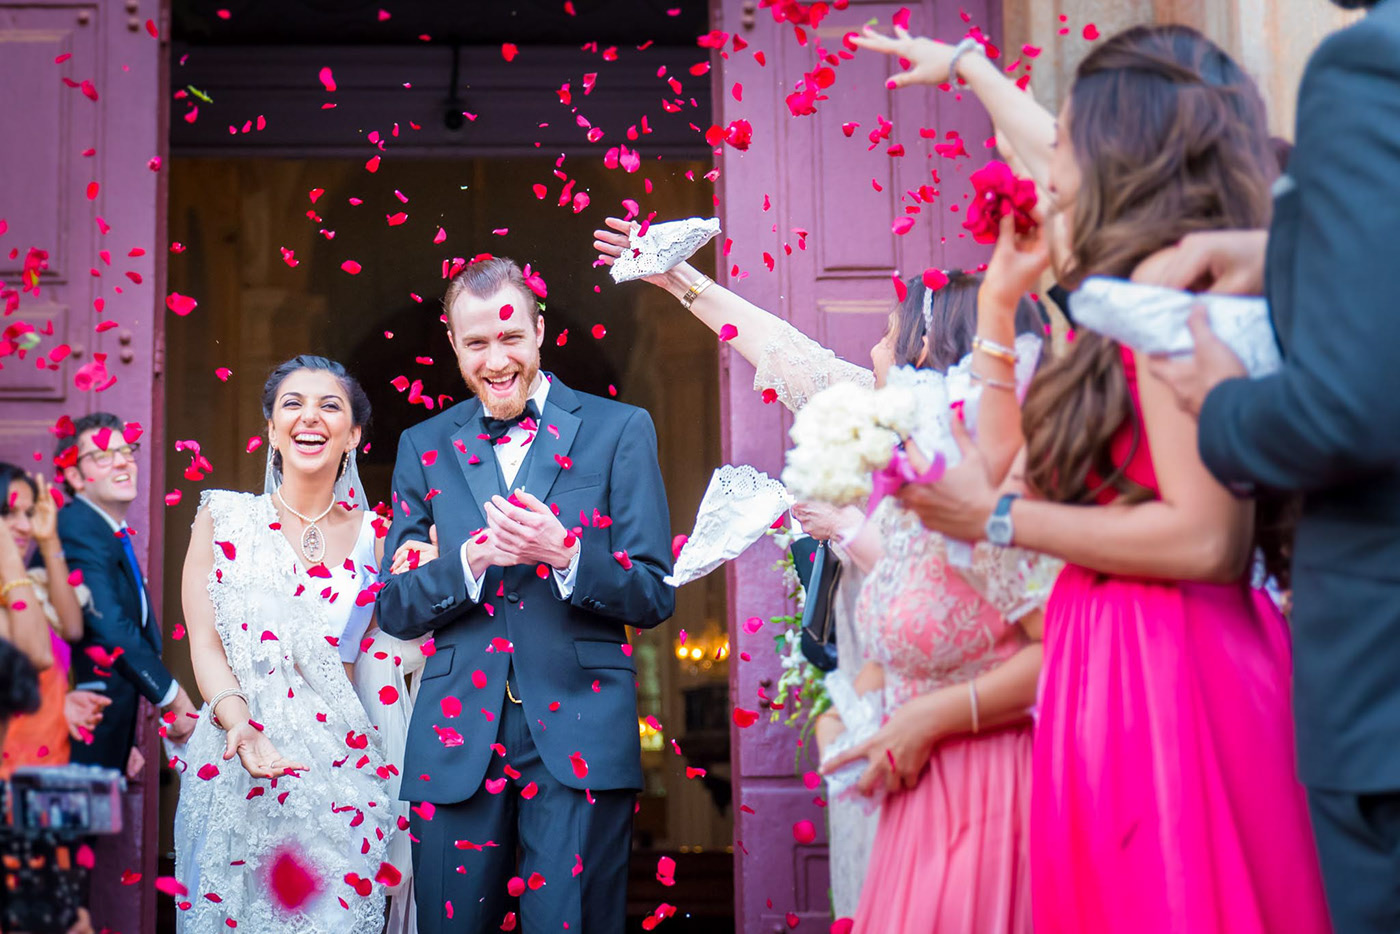 candid photography wedding couple by wallmag